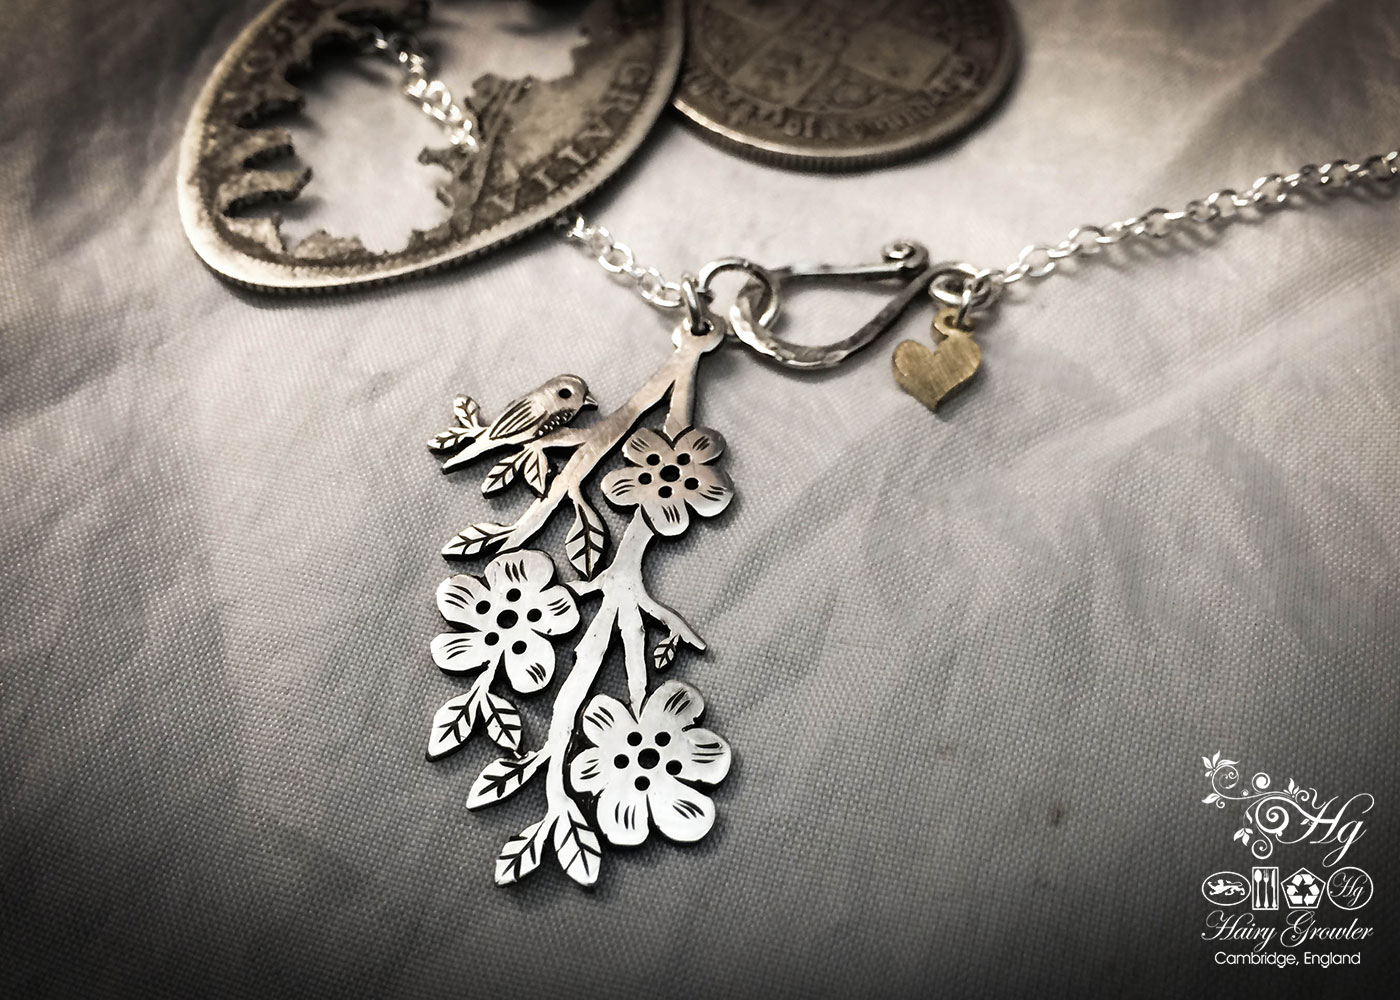 Birdsong and Blossom necklace - handmade and recycled bird necklace to wear and enjoy